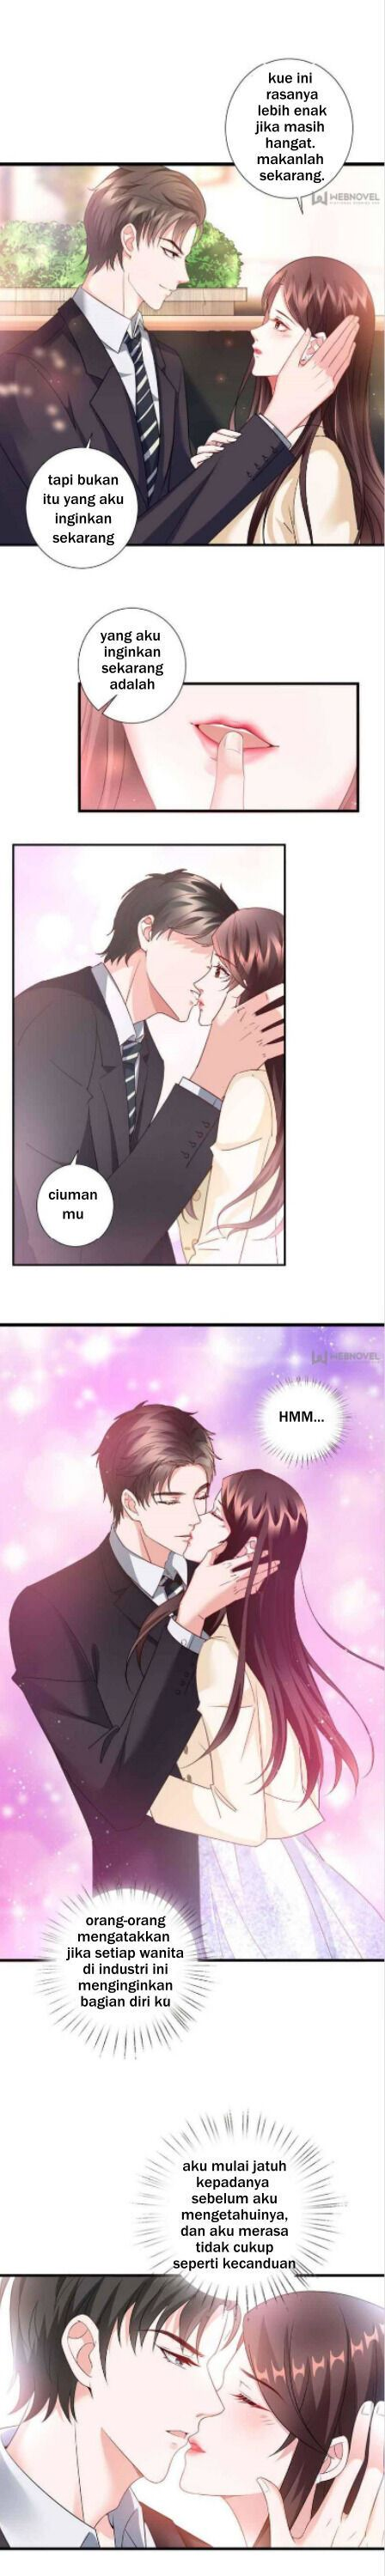 Trial Marriage Husband: Need to Work Hard Chapter 10